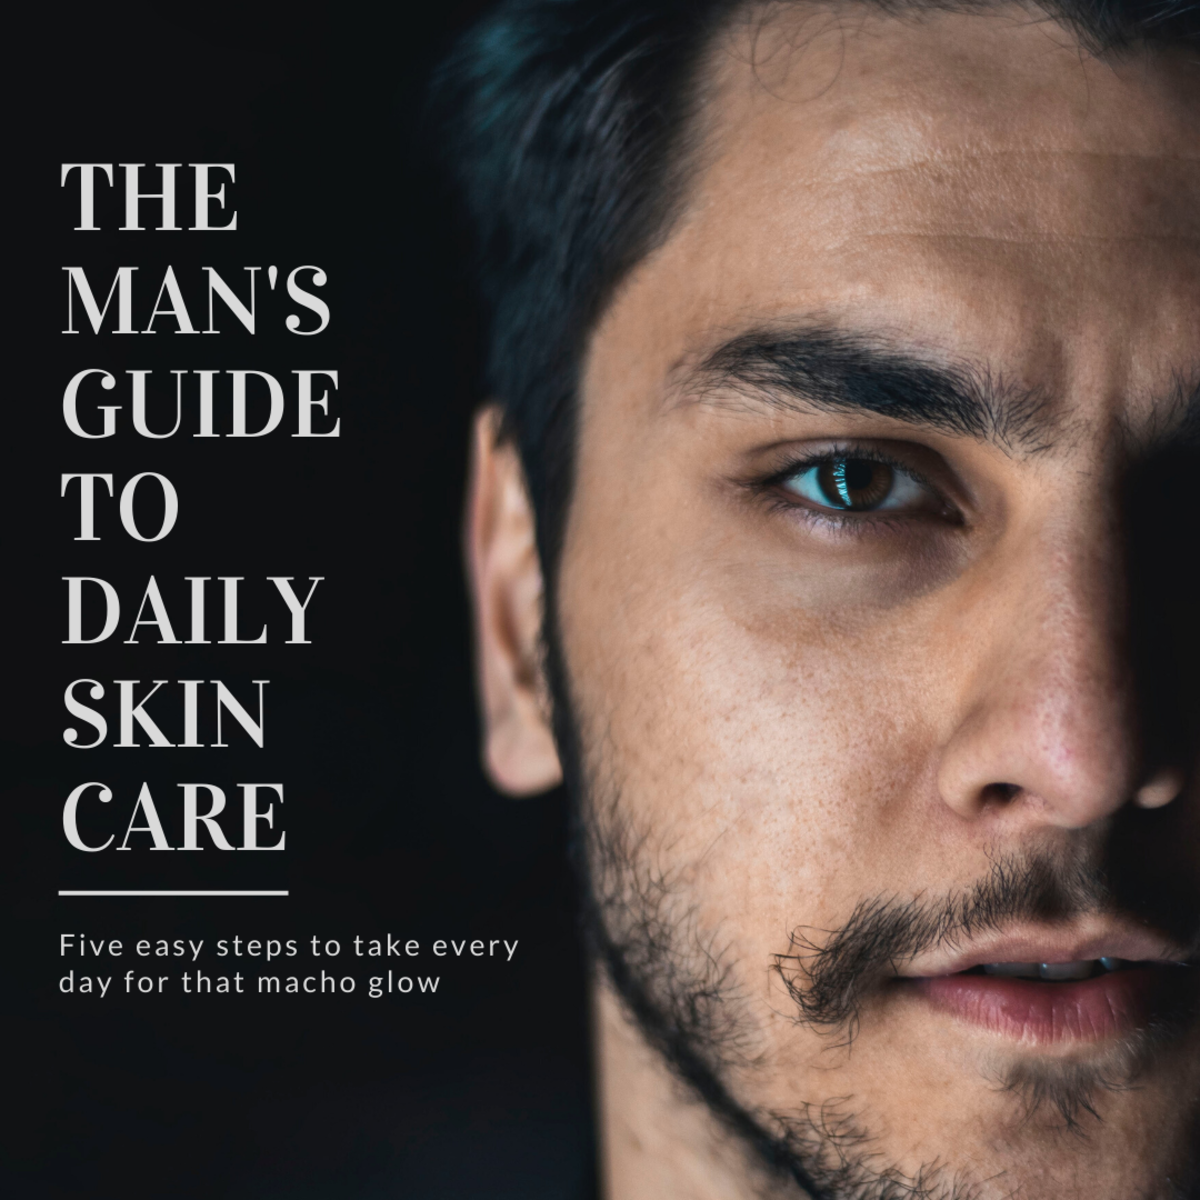 Men's Daily Skin Care Guide for That Macho Glow